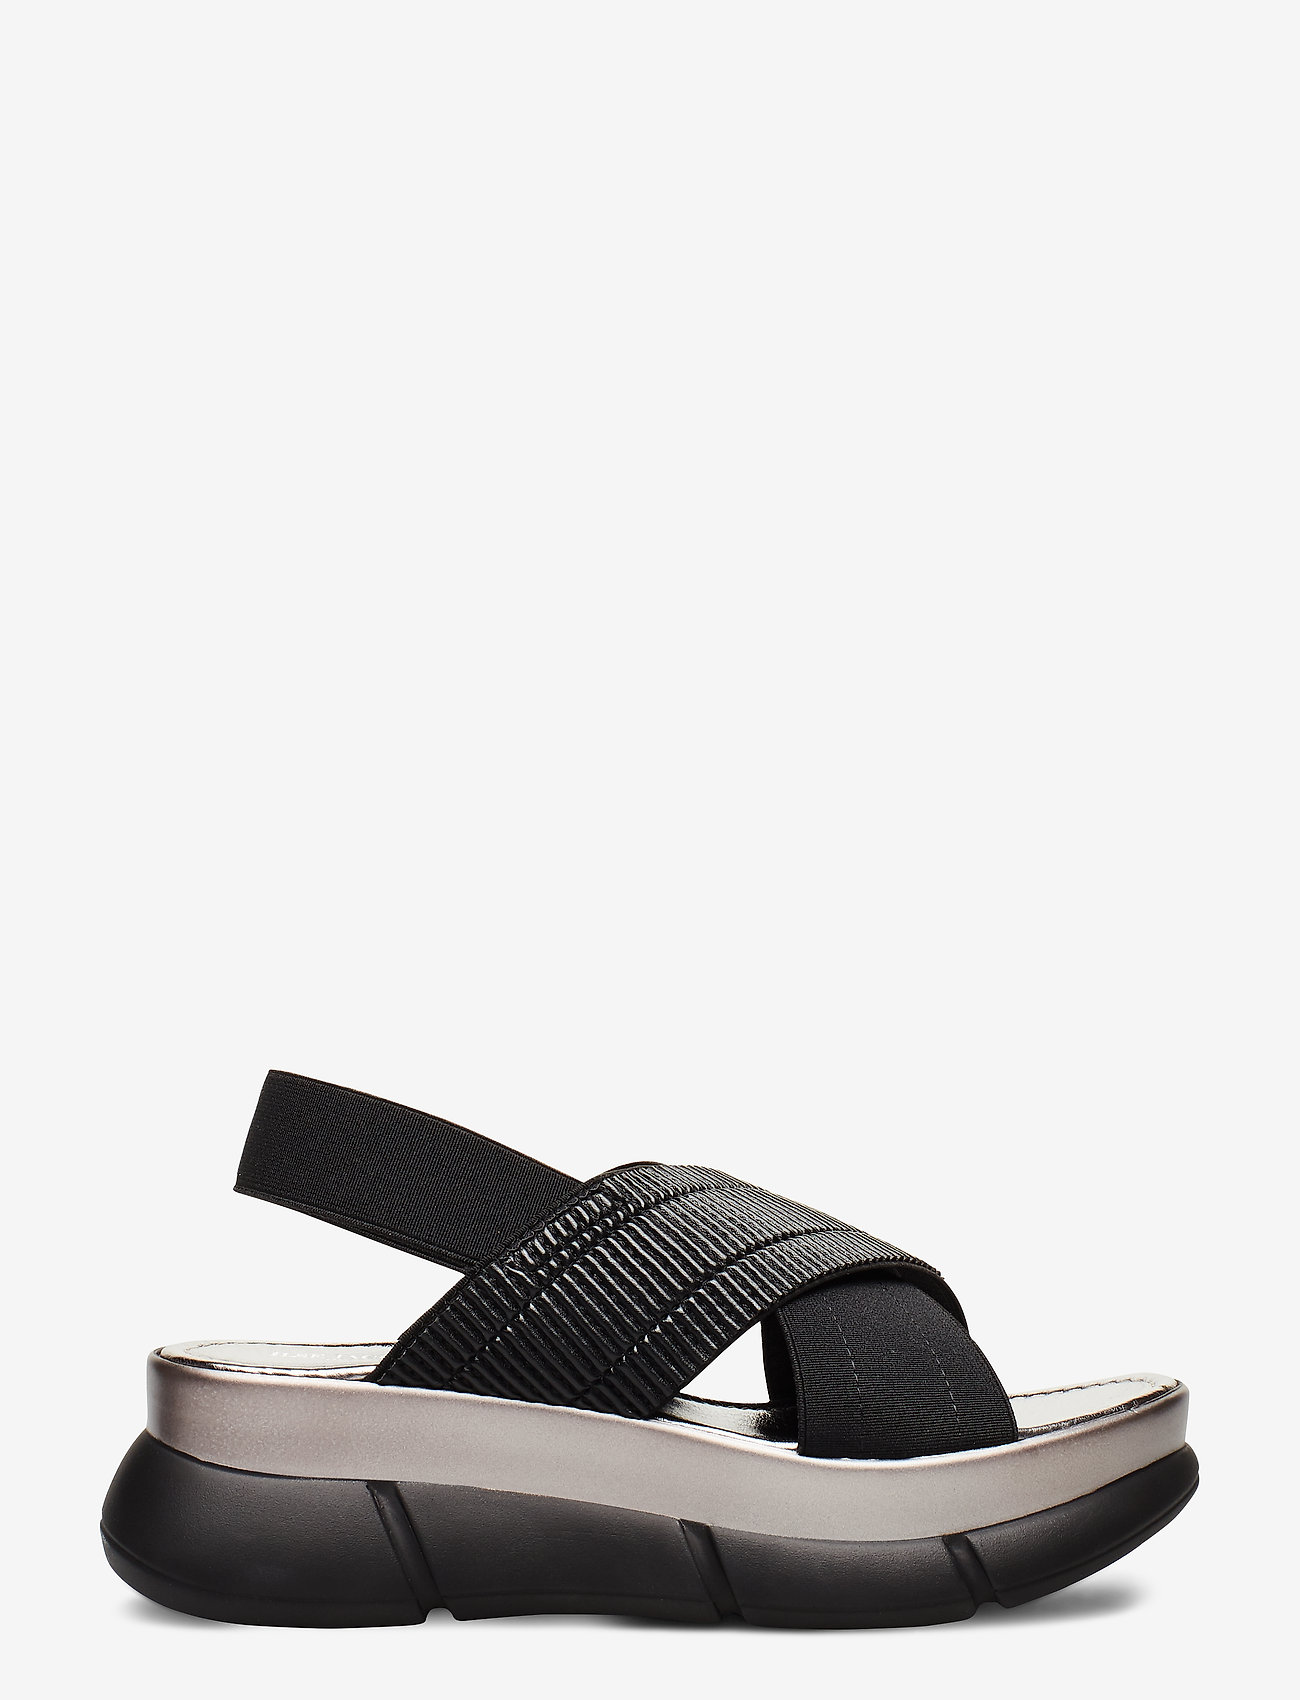 Ilse Jacobsen - SANDALS - sandales - black - 1